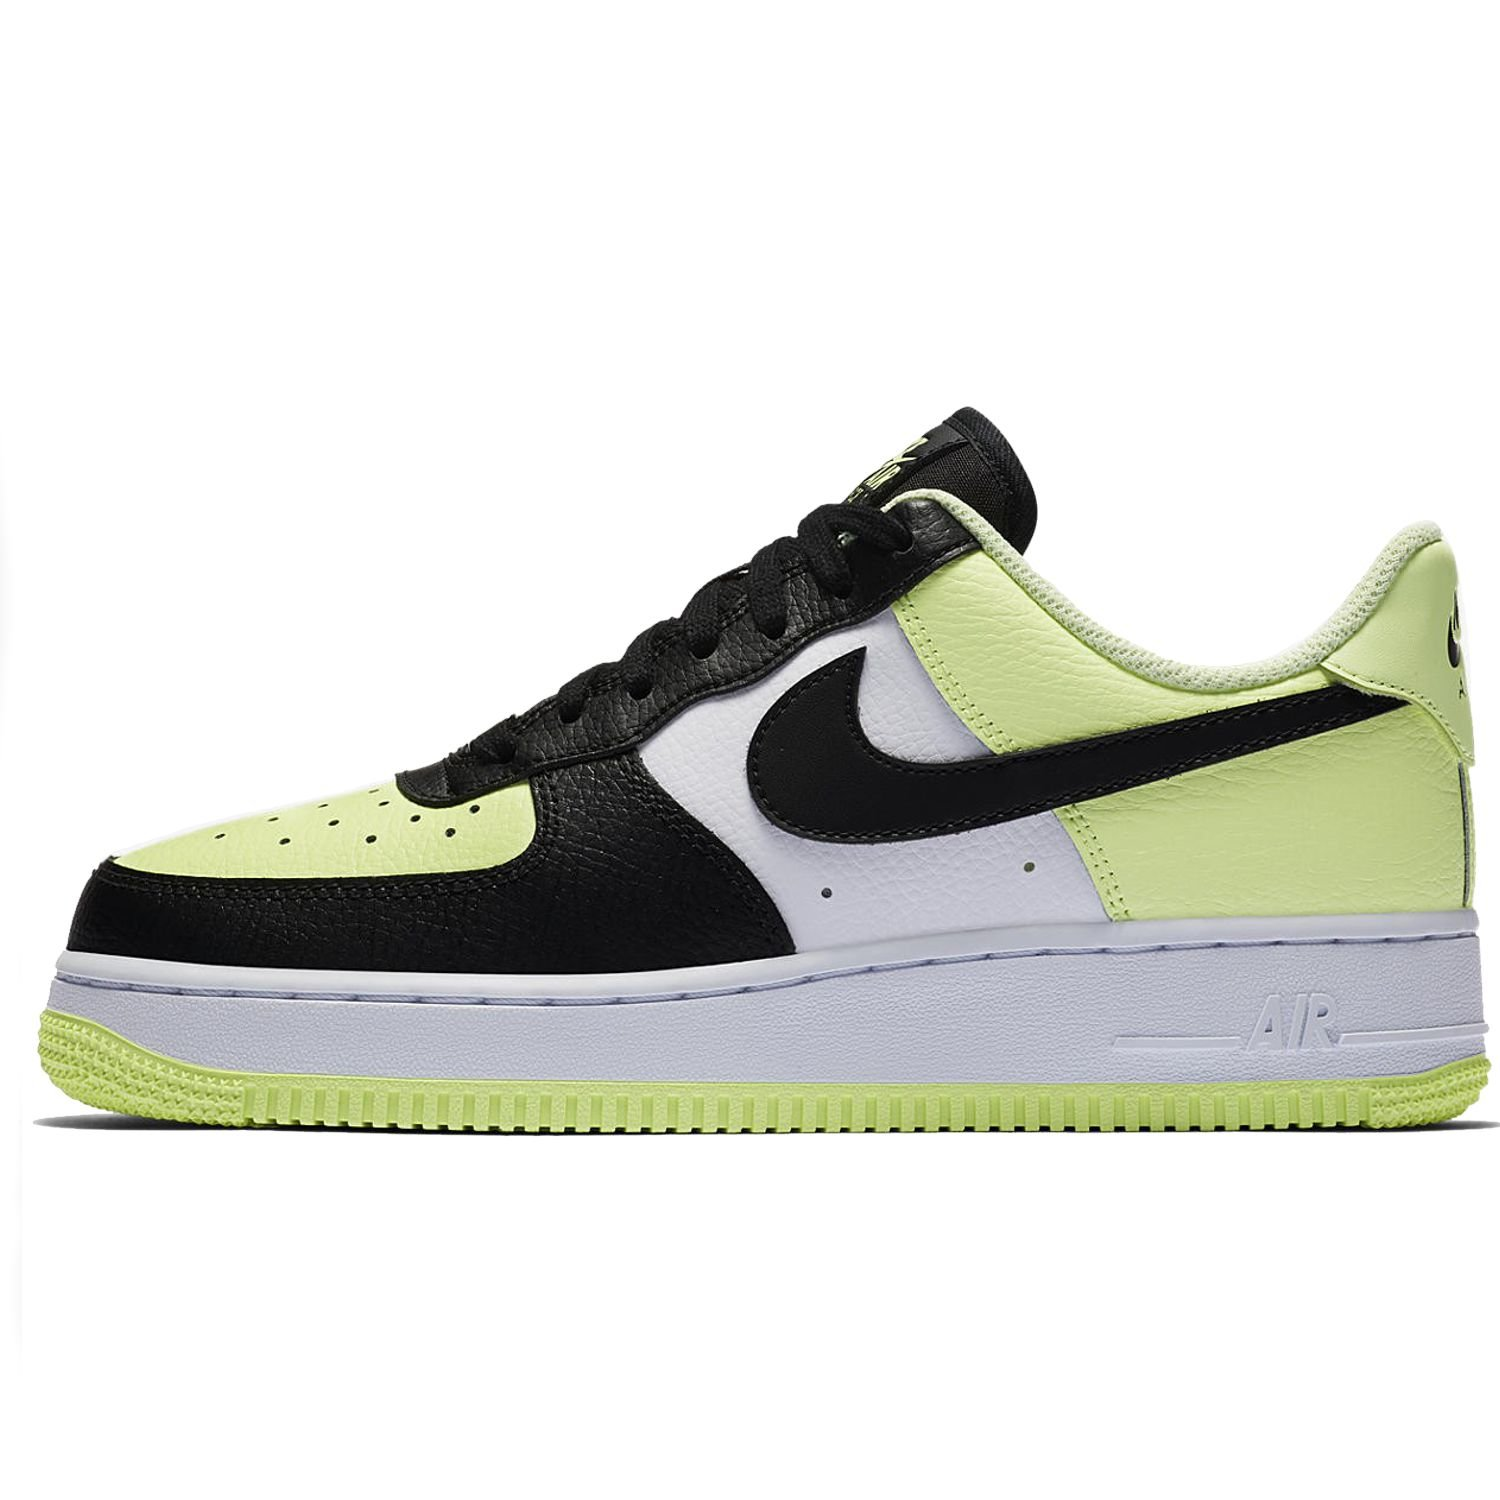 Buty damskie Nike AIR FORCE 1 '07 Buble Pack   CW2361 700